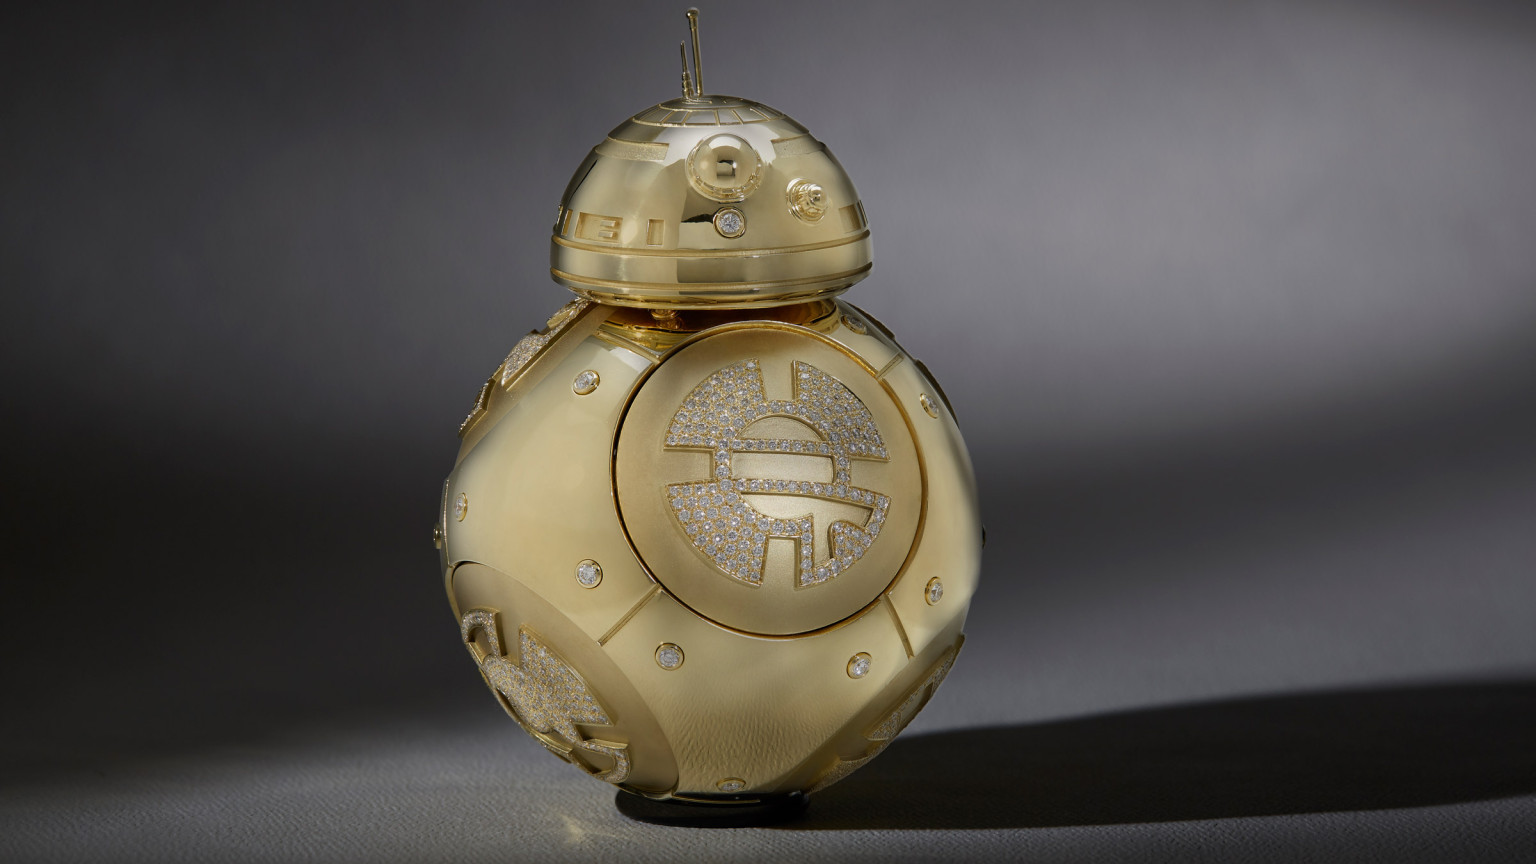 Kay Jewelers gold BB-8